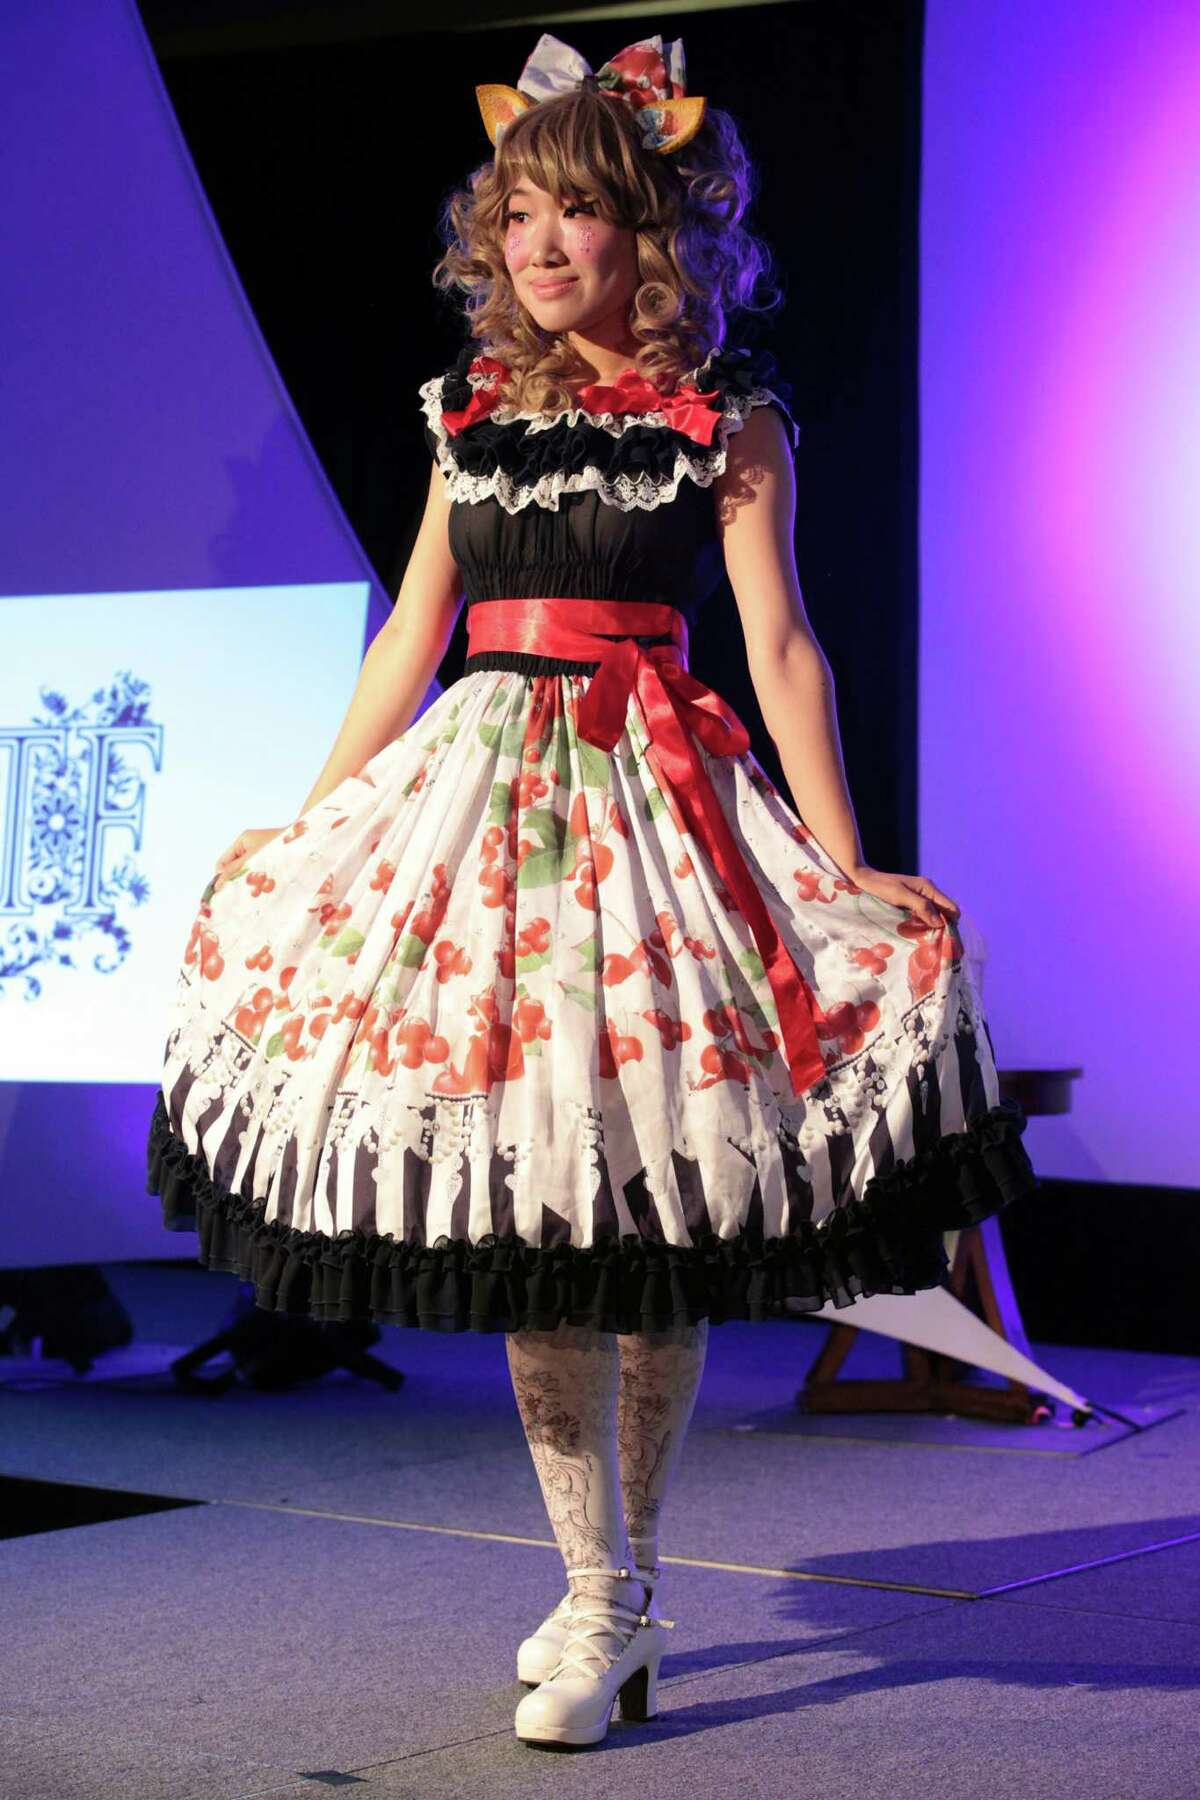 A model wears a Triple Fortune ensemble, a Japanese brand, during a fashion show at RuffleCon at the Sheraton in Stamford, Conn. on Saturday, October 3, 2015.